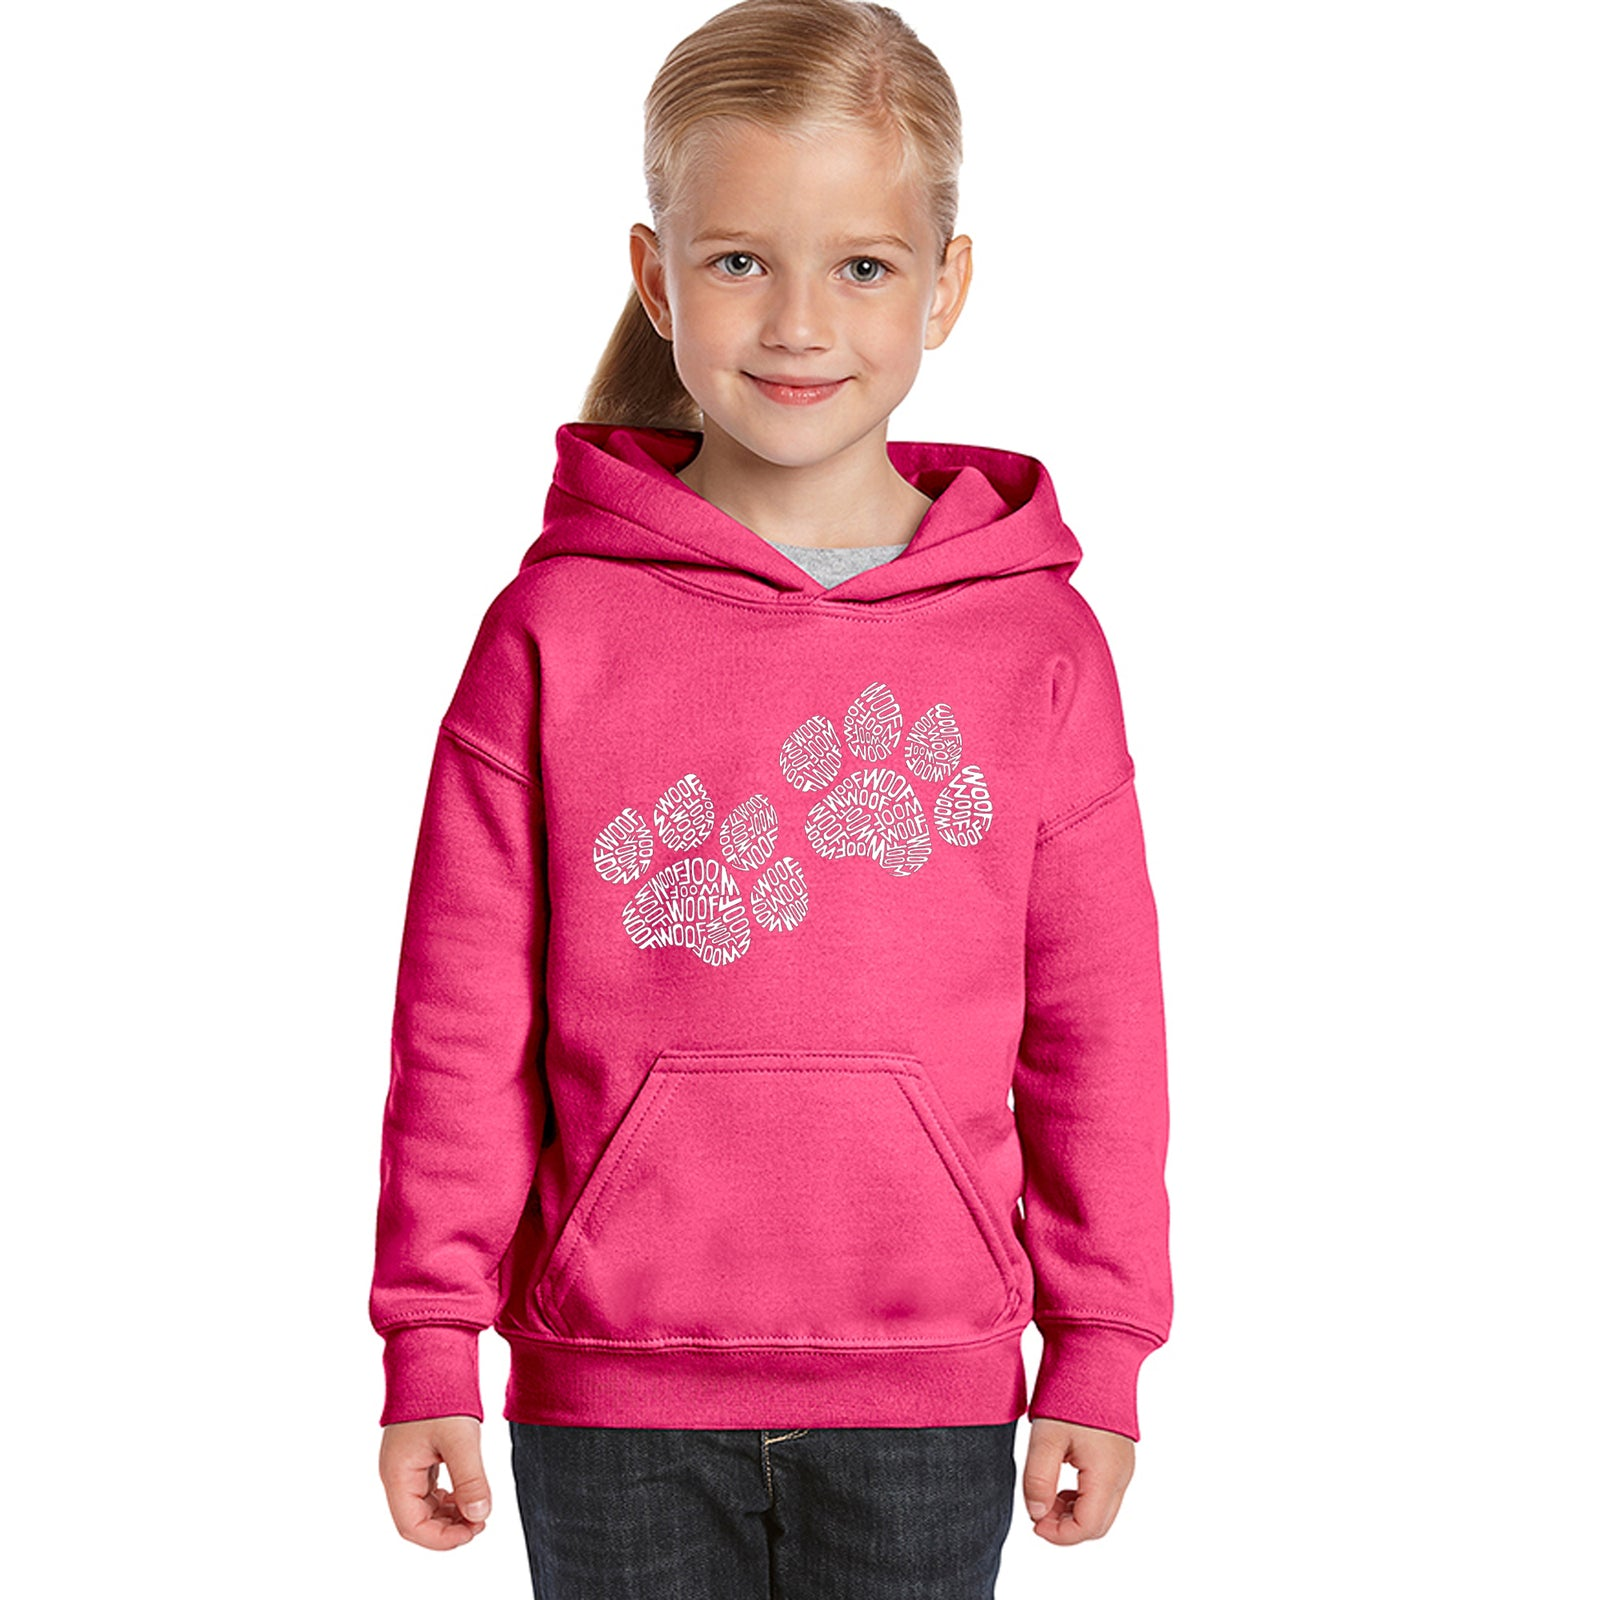 Girl's Hooded Sweatshirt - Woof Paw Prints